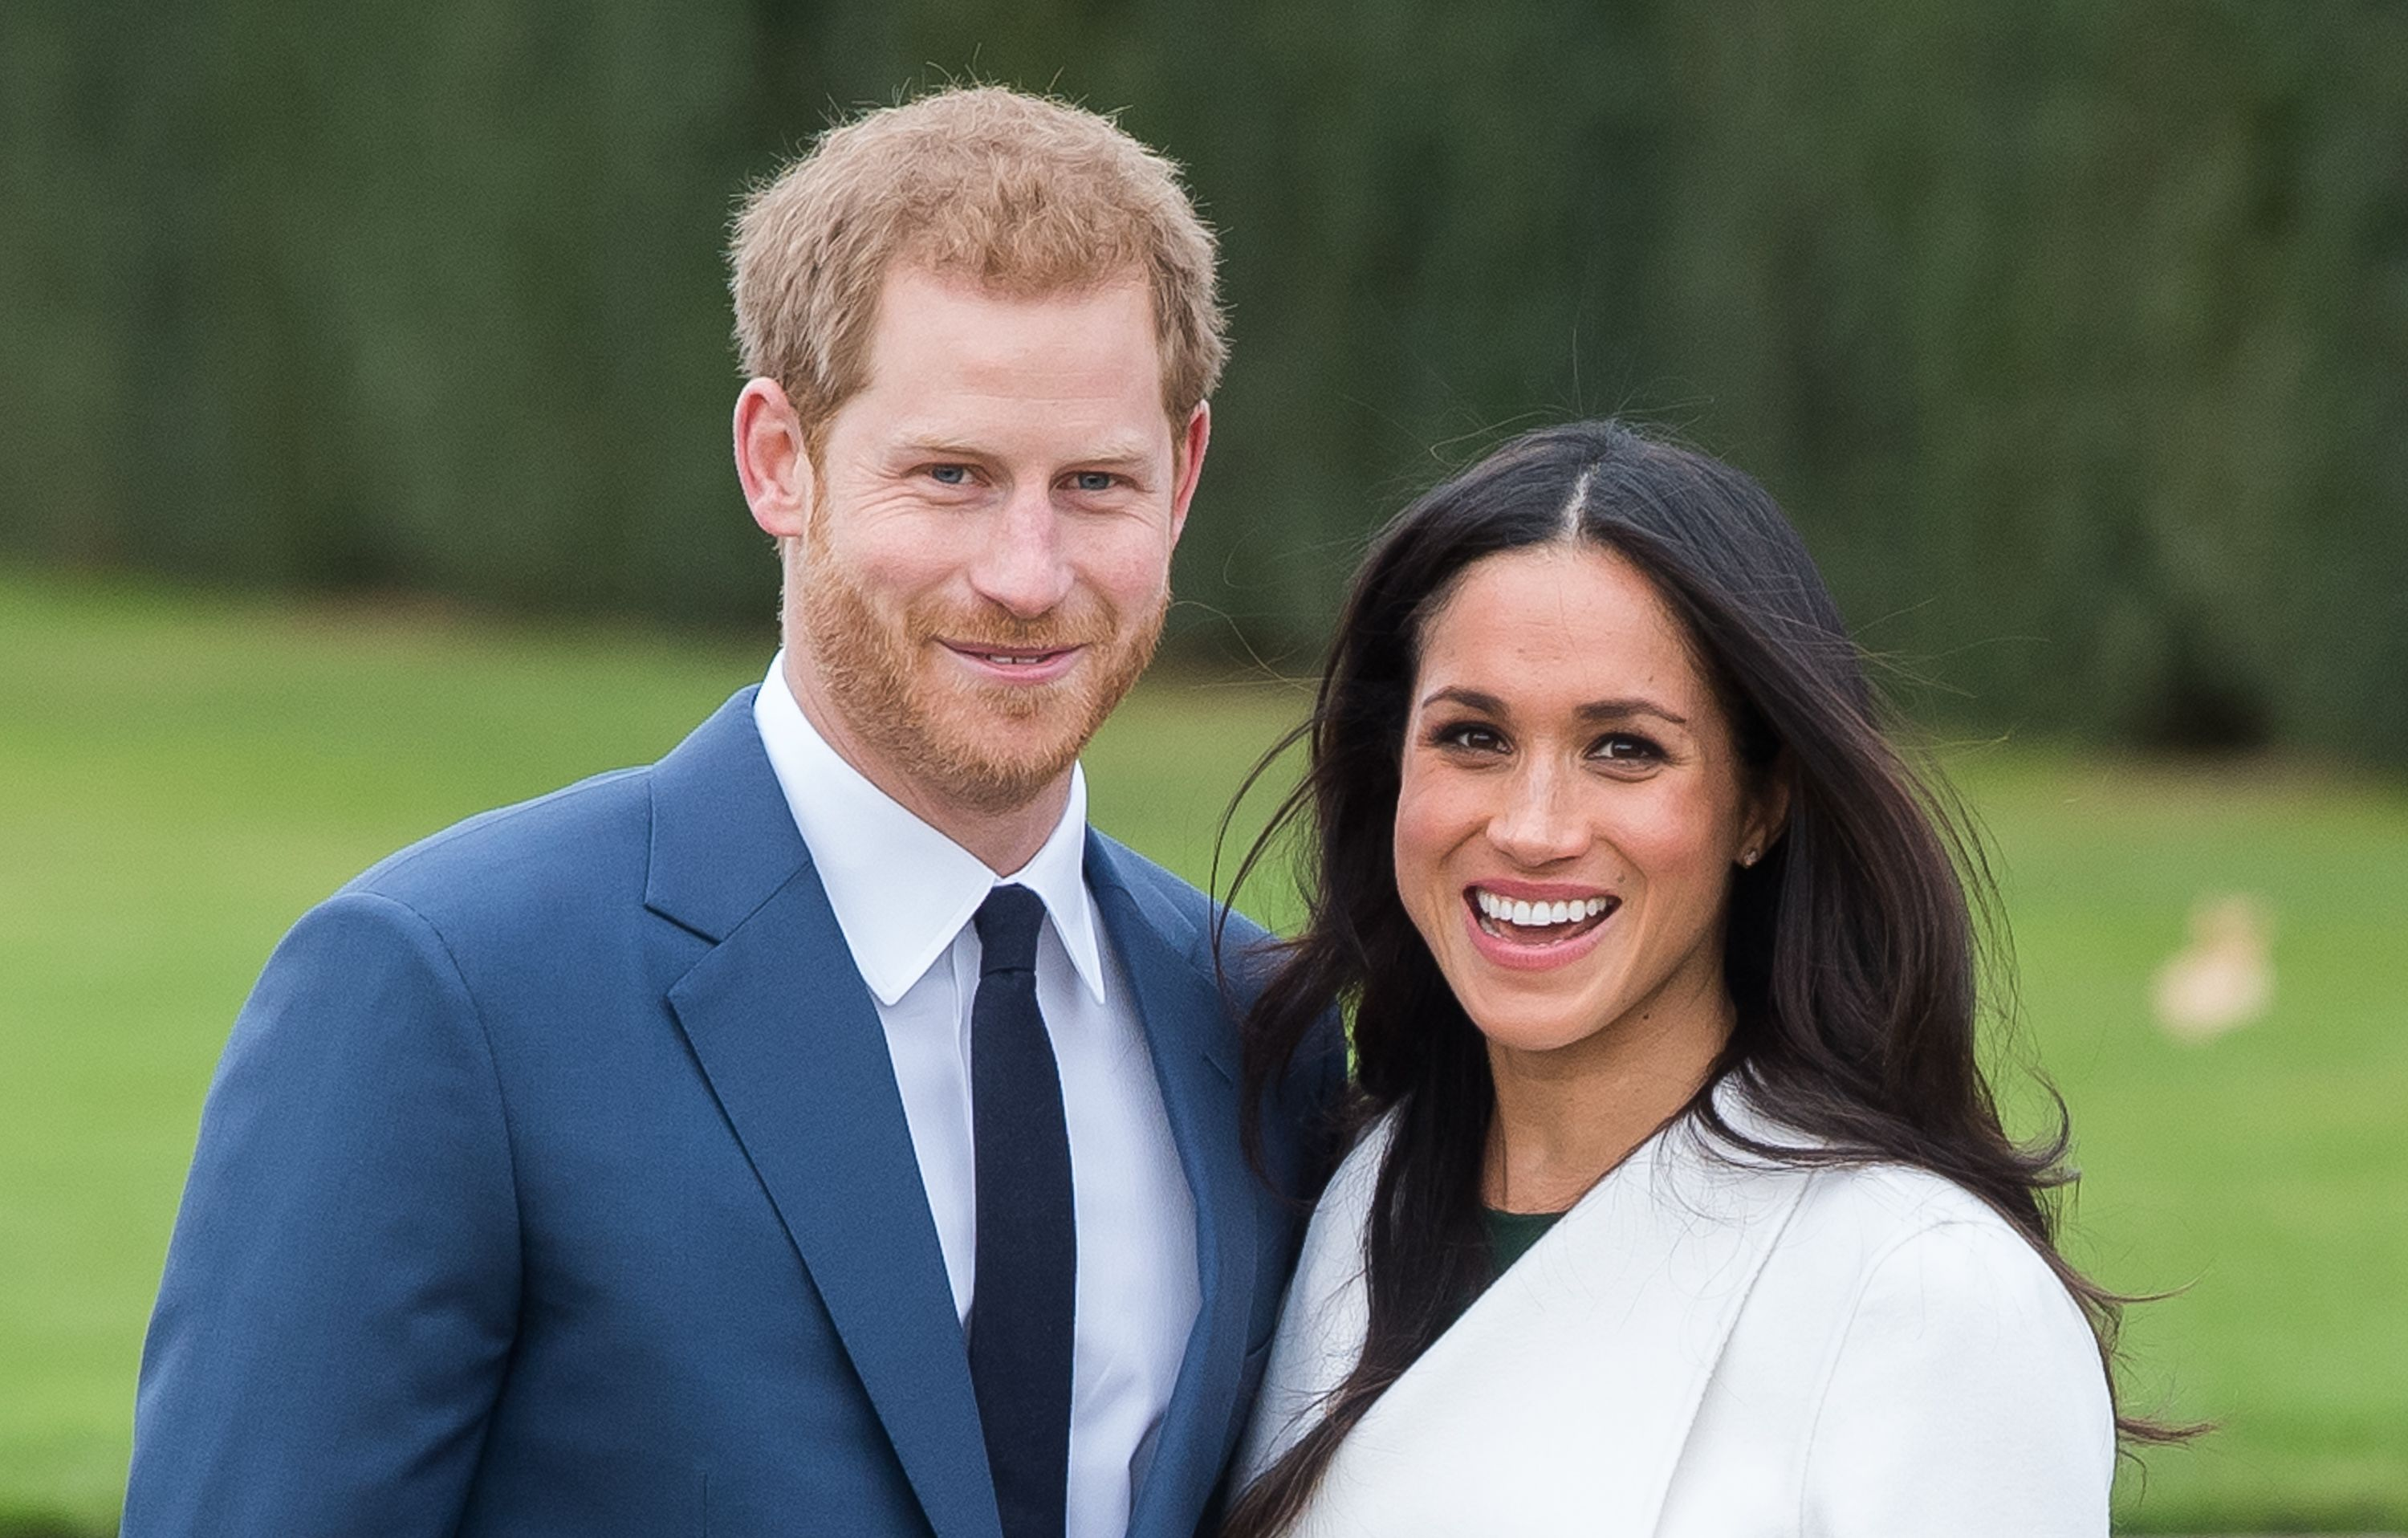 Prince Harry and Meghan Markle during an official photocall to announce their engagementat The Sunken Gardens at Kensington Palace in London, England | Photo: Getty Images